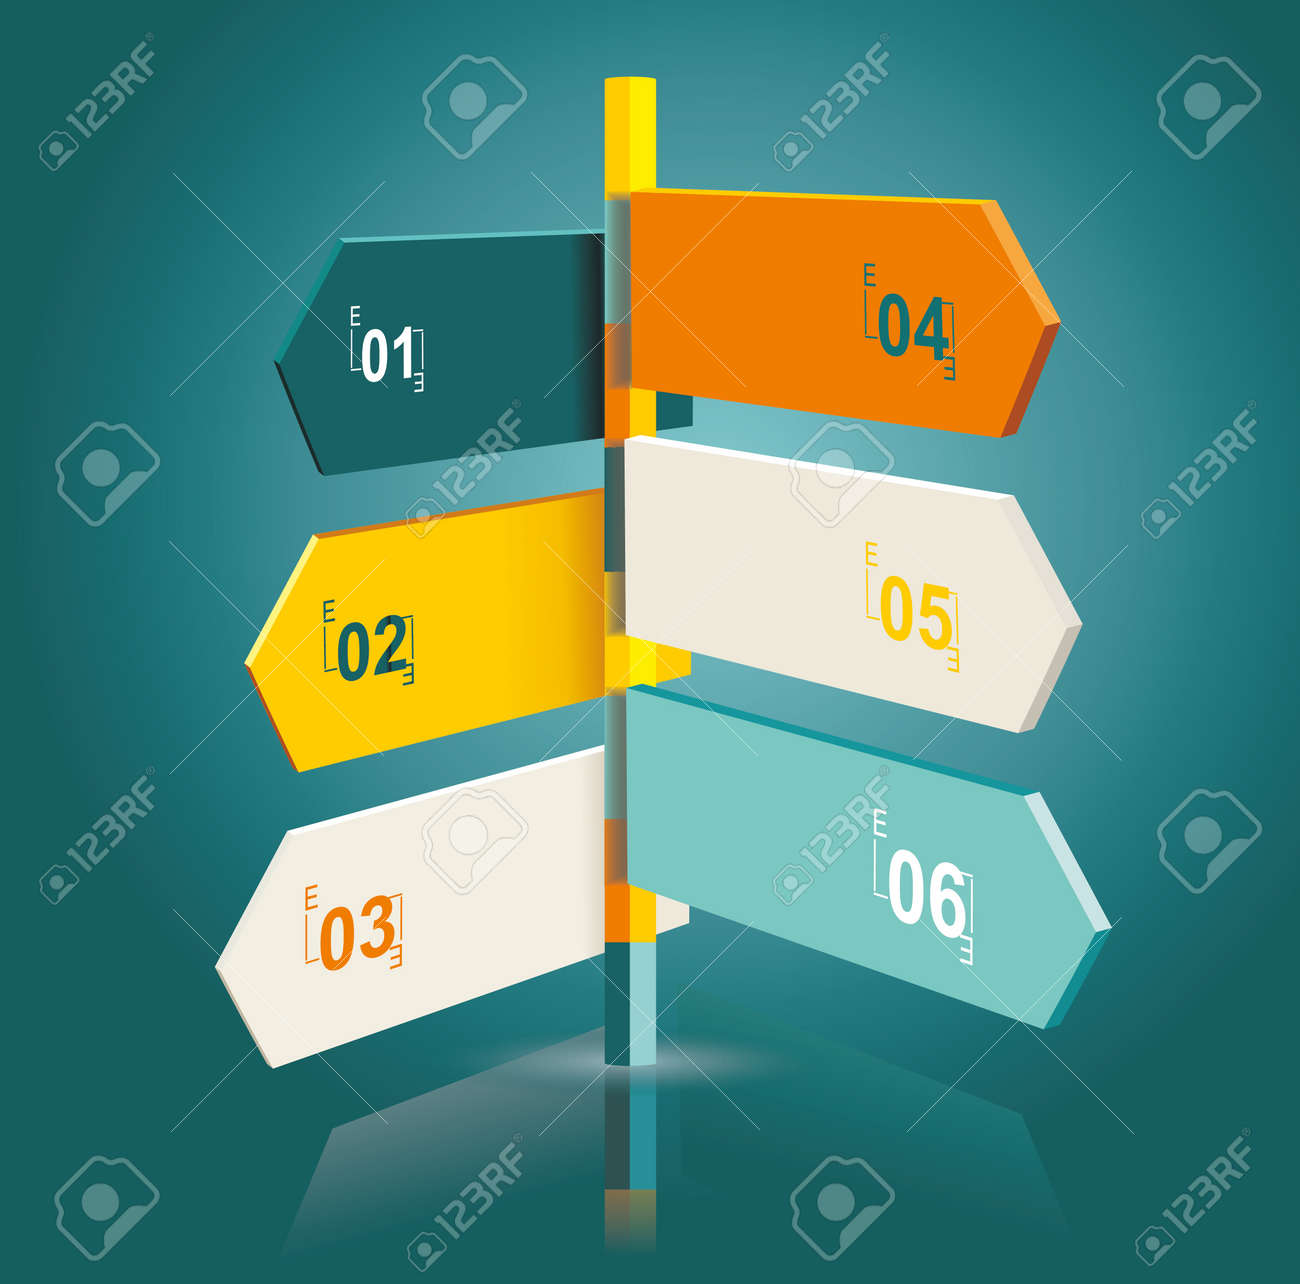 Diagram template of multidirectional pointers on a signpost Stock Vector - 21234641